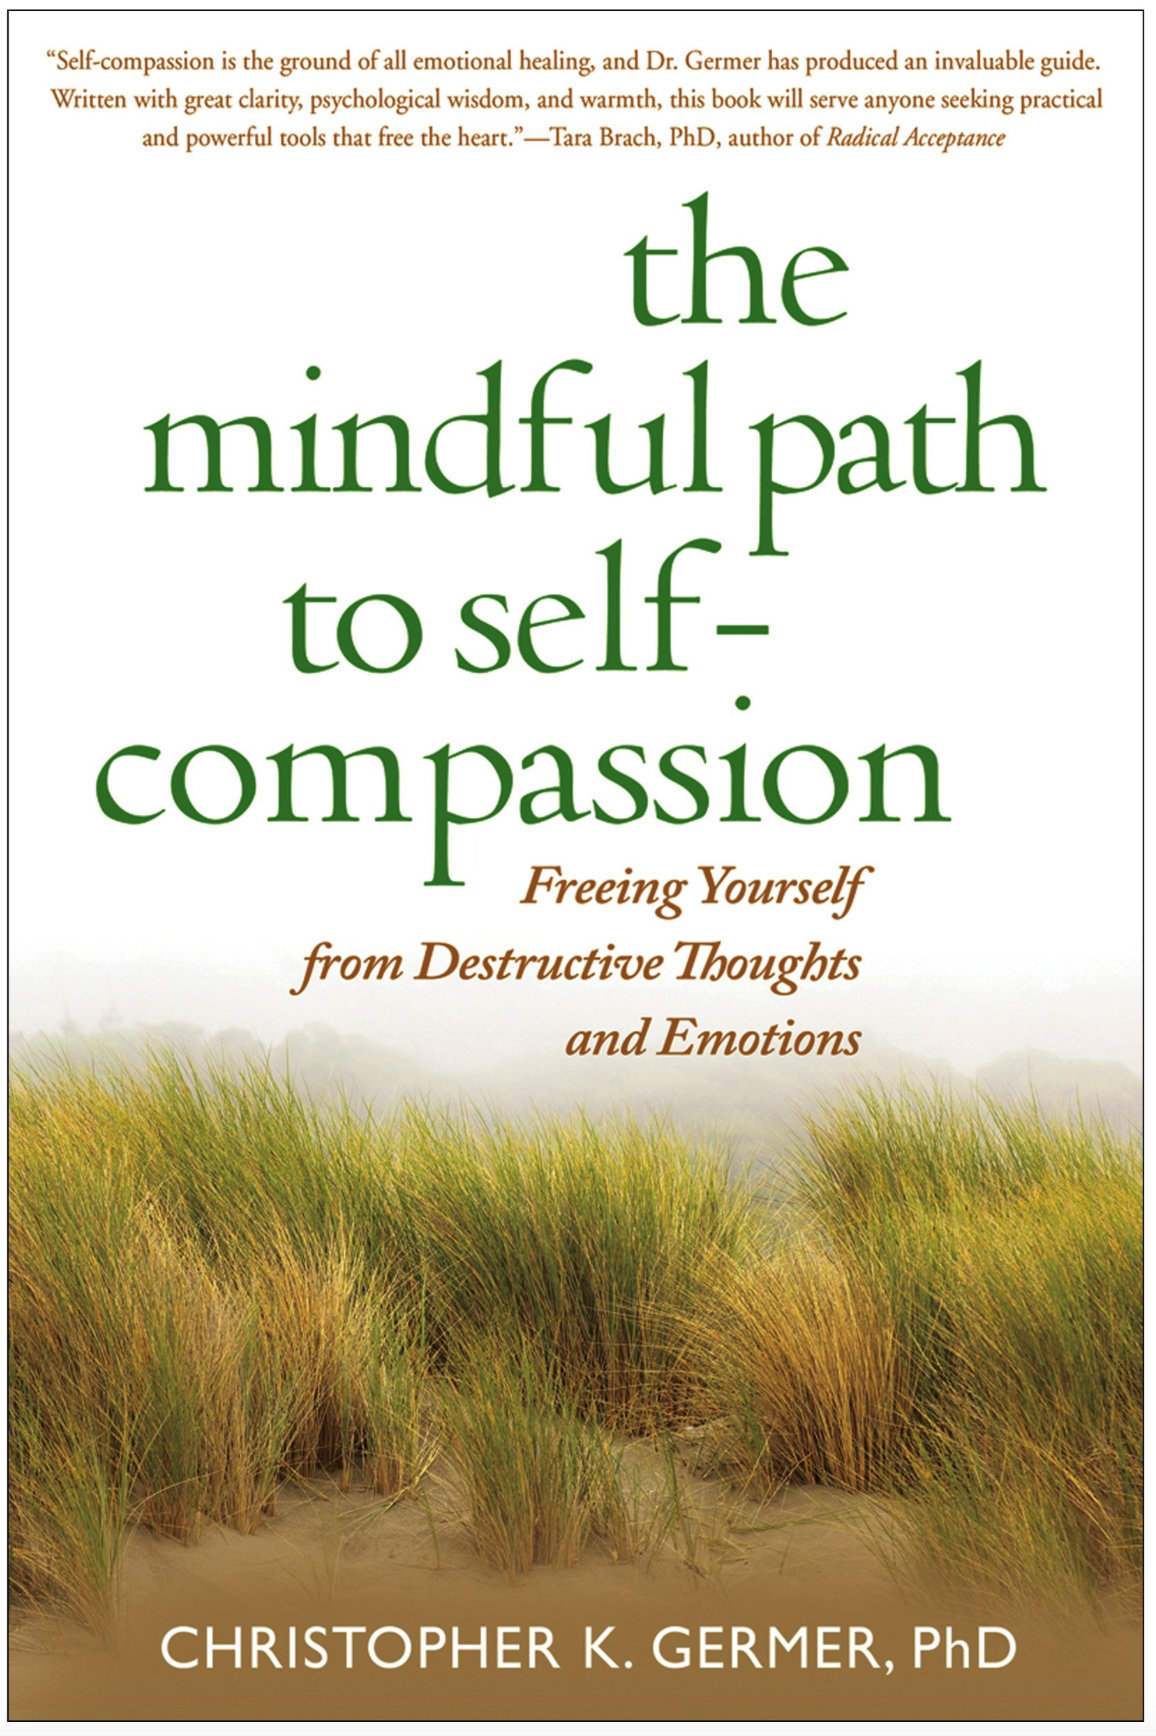 The Mindful Path to Self-Compassion, Freeing Yourself from Destructive Thoughts and Emotions , by Christopher Germer